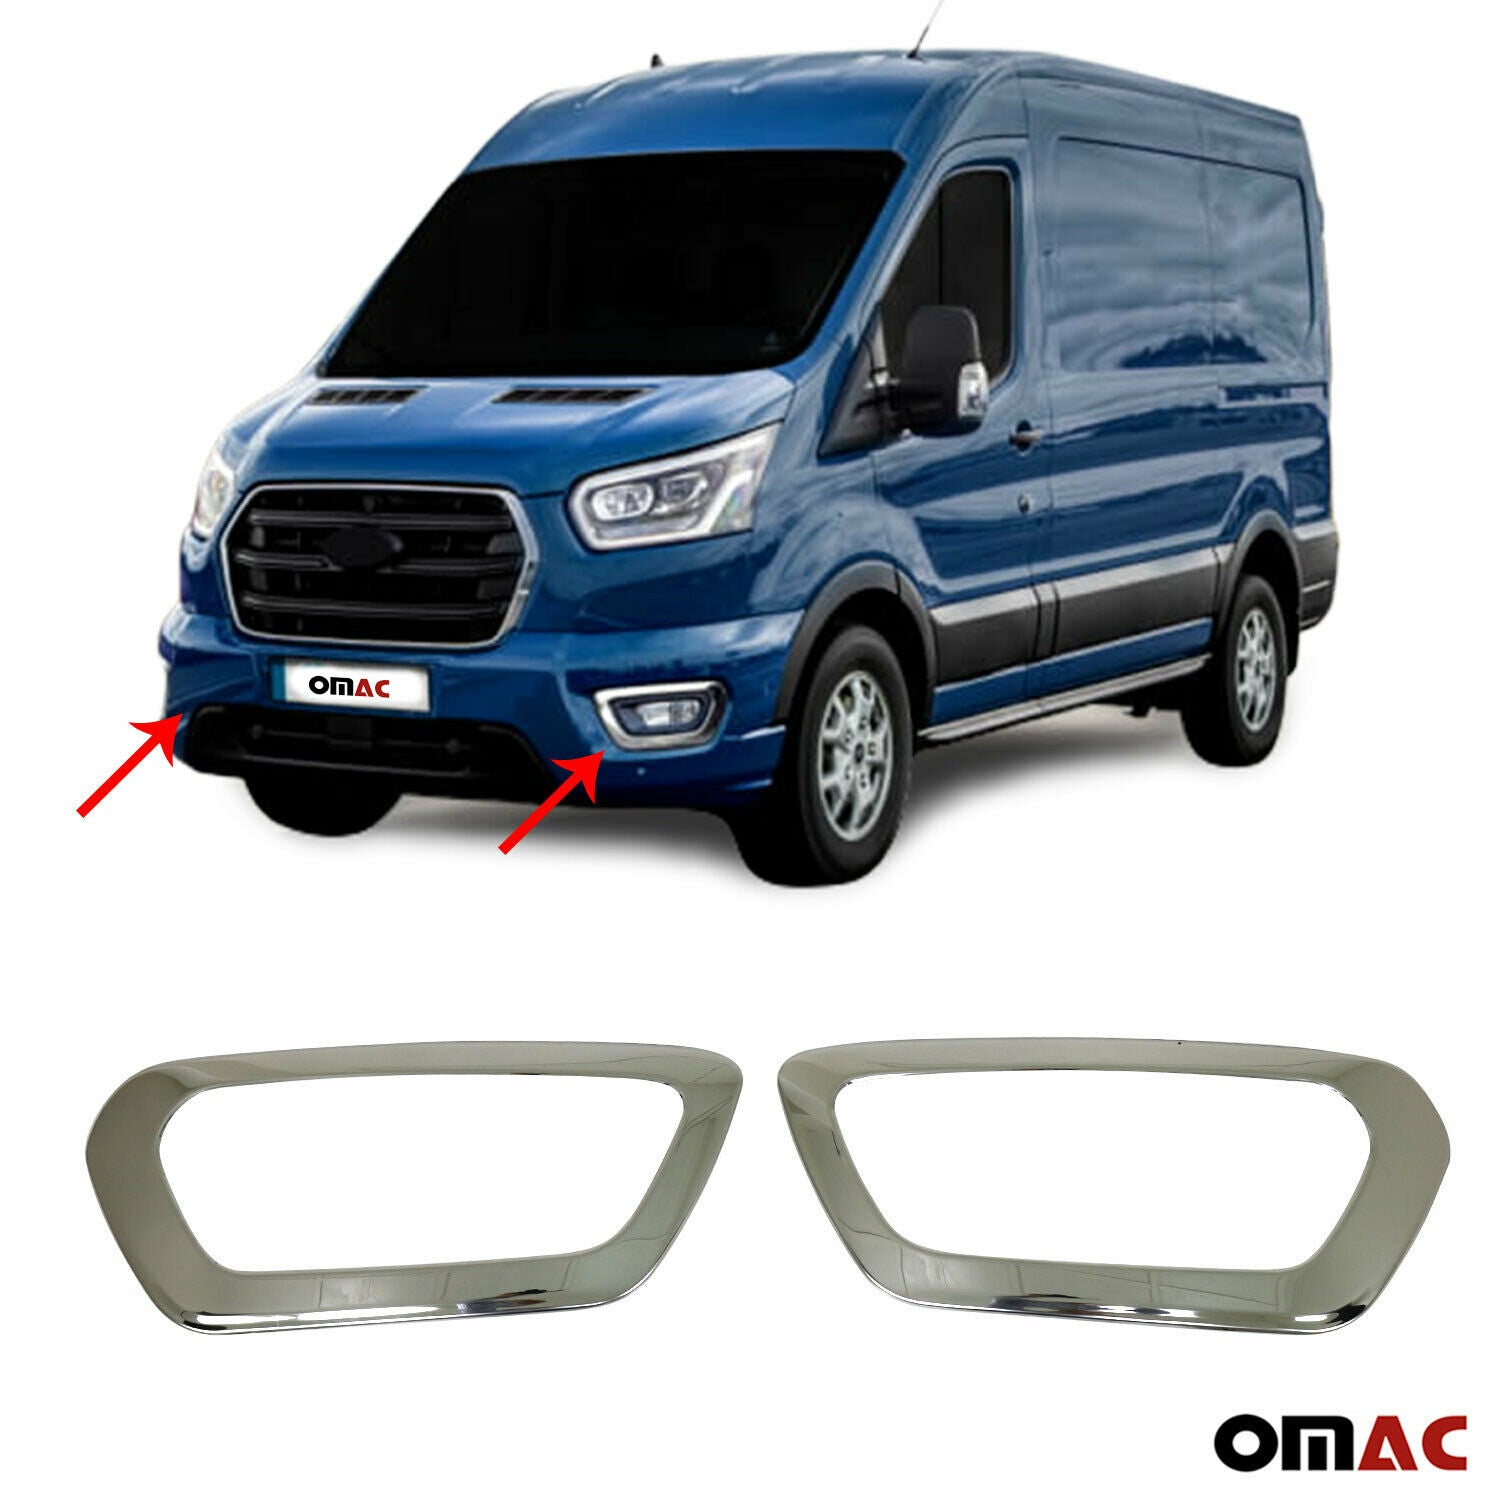 Chrome Front Fog Light Surround Lamp Cover 2Pcs Steel for Ford Transit 2019-2020